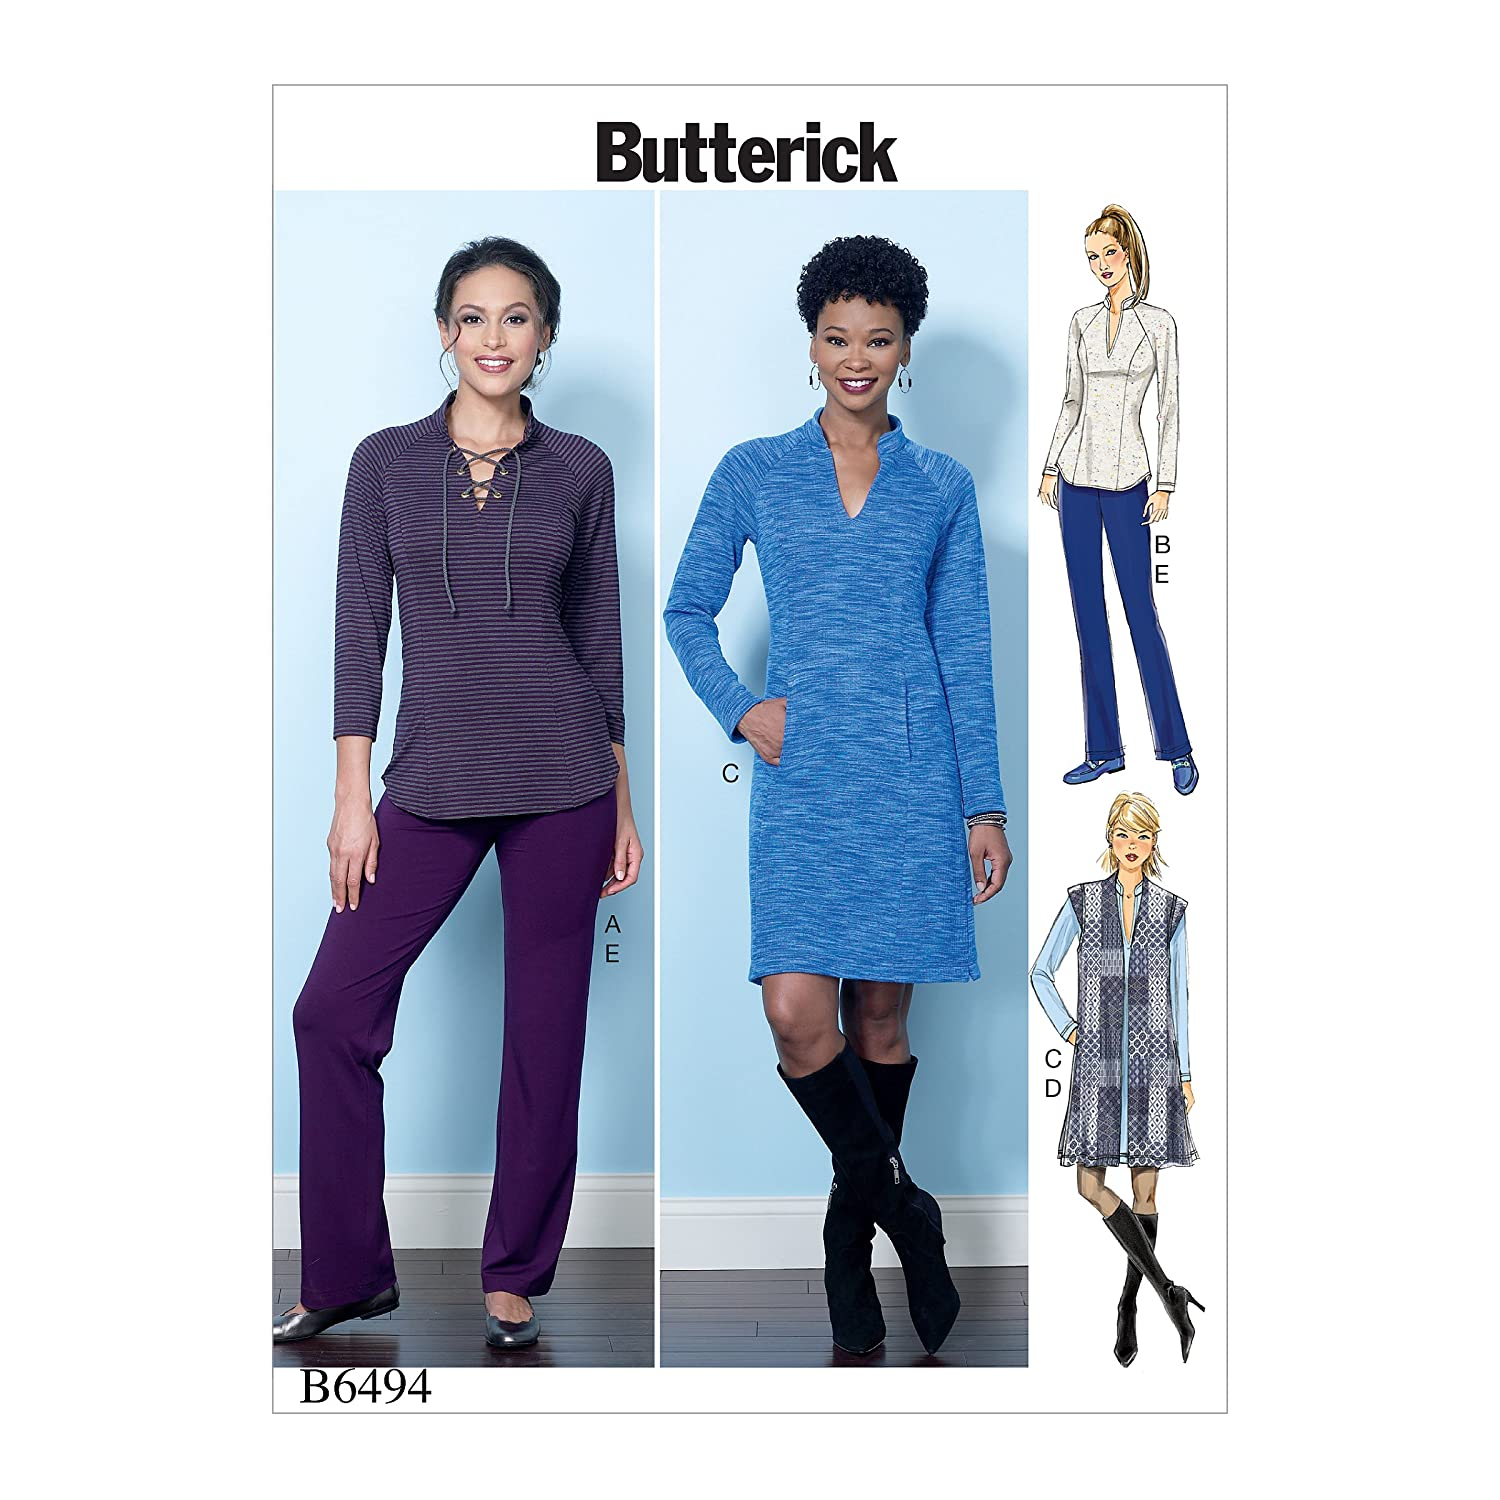 Butterick Patterns 6494 E5,Misses Top,Vest,Dress and Pants,Sizes 14-22, Tissue, Multi-Colour, 17 x 0.5 x 22 cm The McCall Pattern Company B6494E50